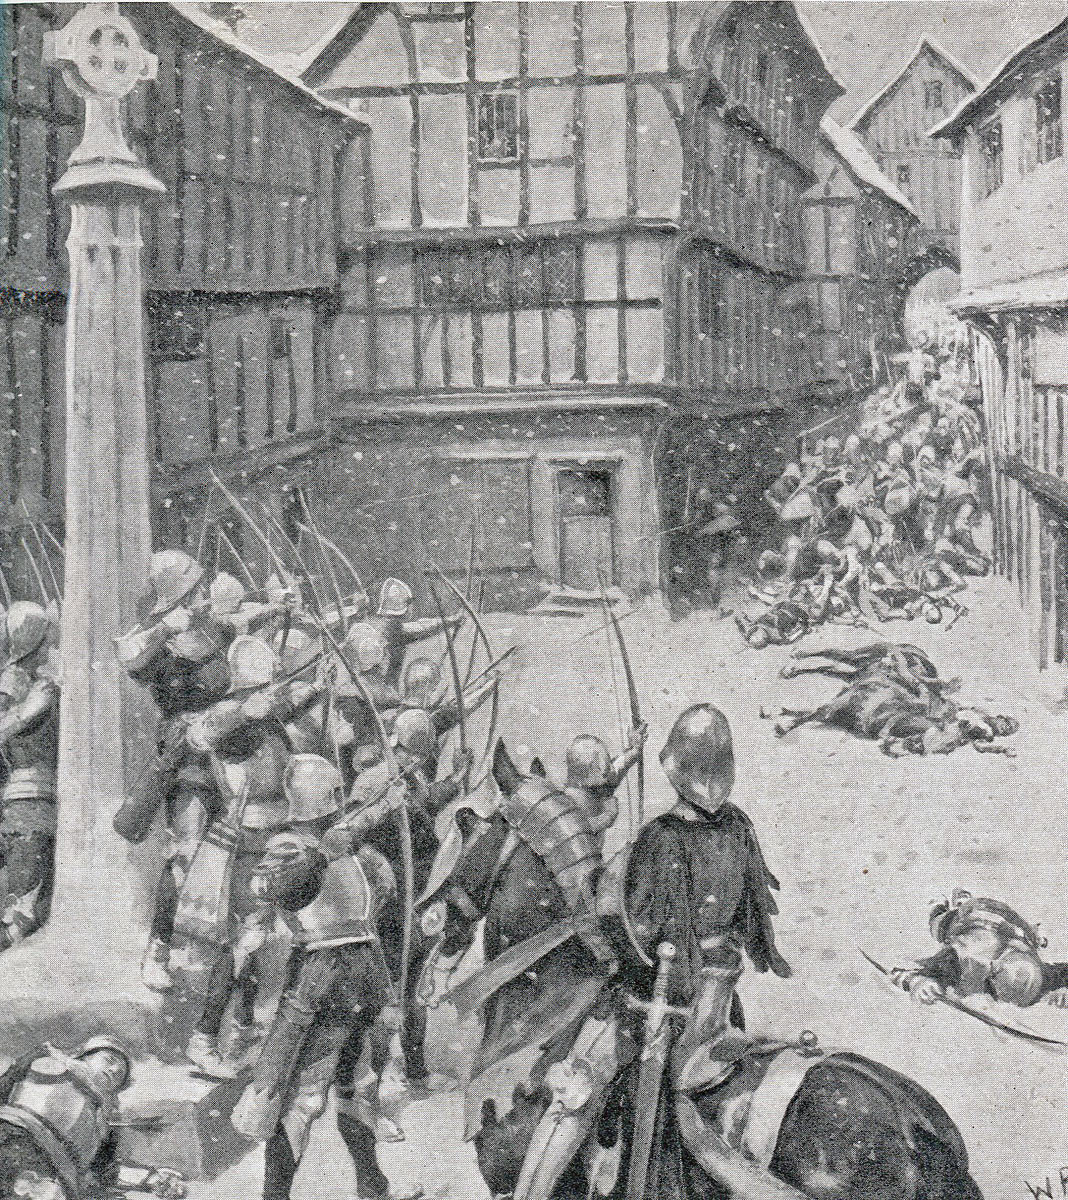 Yorkist archers fire on the attacking Lancastrians at the Second Battle of St Albans, fought on 17th February 1461 in the Wars of the Roses